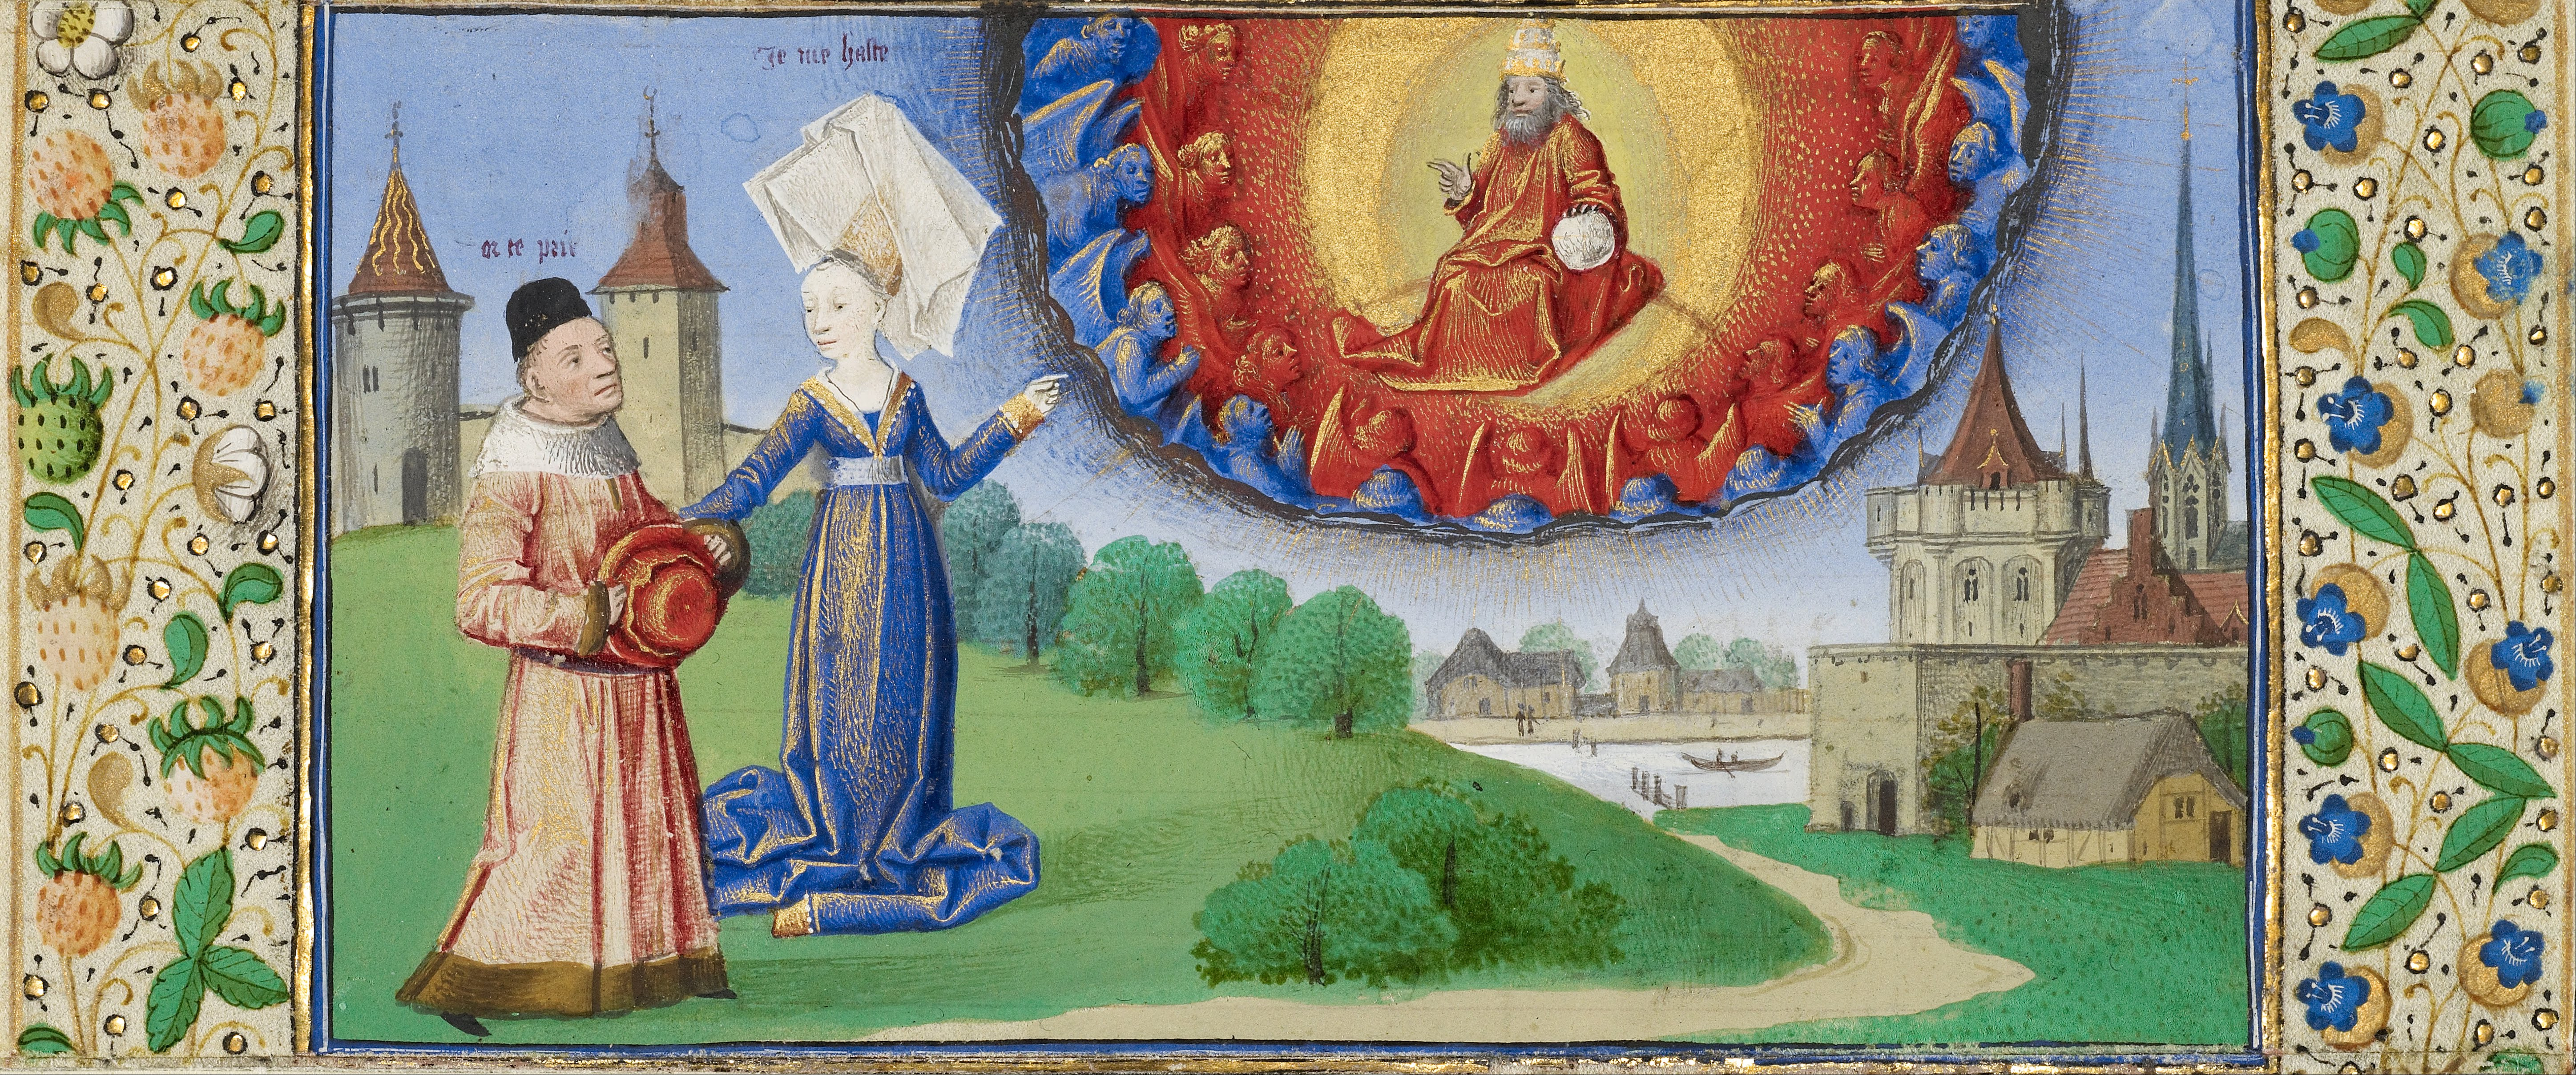 boethius philosophy Other articles where consolation of philosophy is discussed: fable, parable, and allegory: diversity of forms: boethius's consolation of philosophy (c ad 524) and dante's the new life (c 1293) interrupt the prose discourse with short poems.